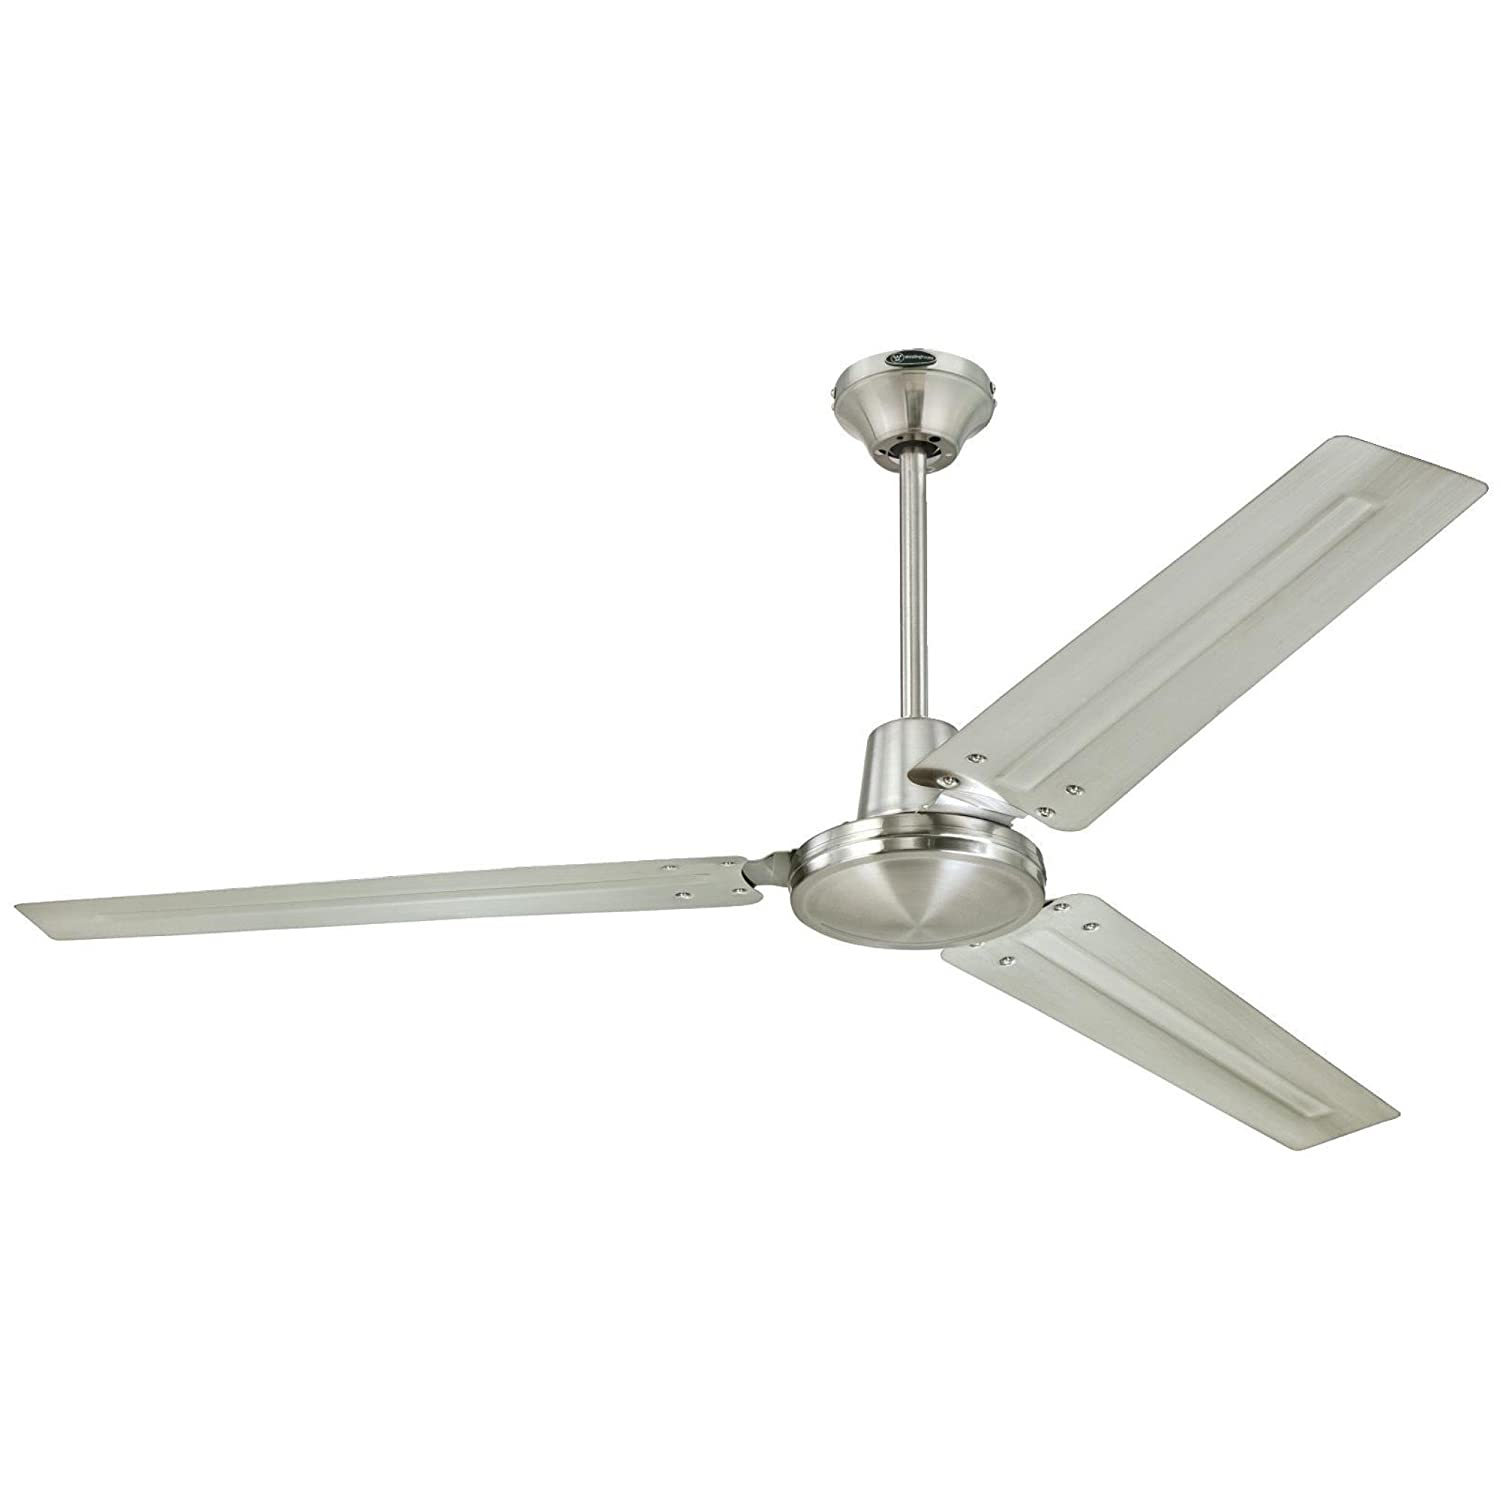 fan latestreleased rendition file revisionselectionmethod zoomimage get ceiling good fans the guys blade at nosaveas gva idcservice white idcplg ddocname